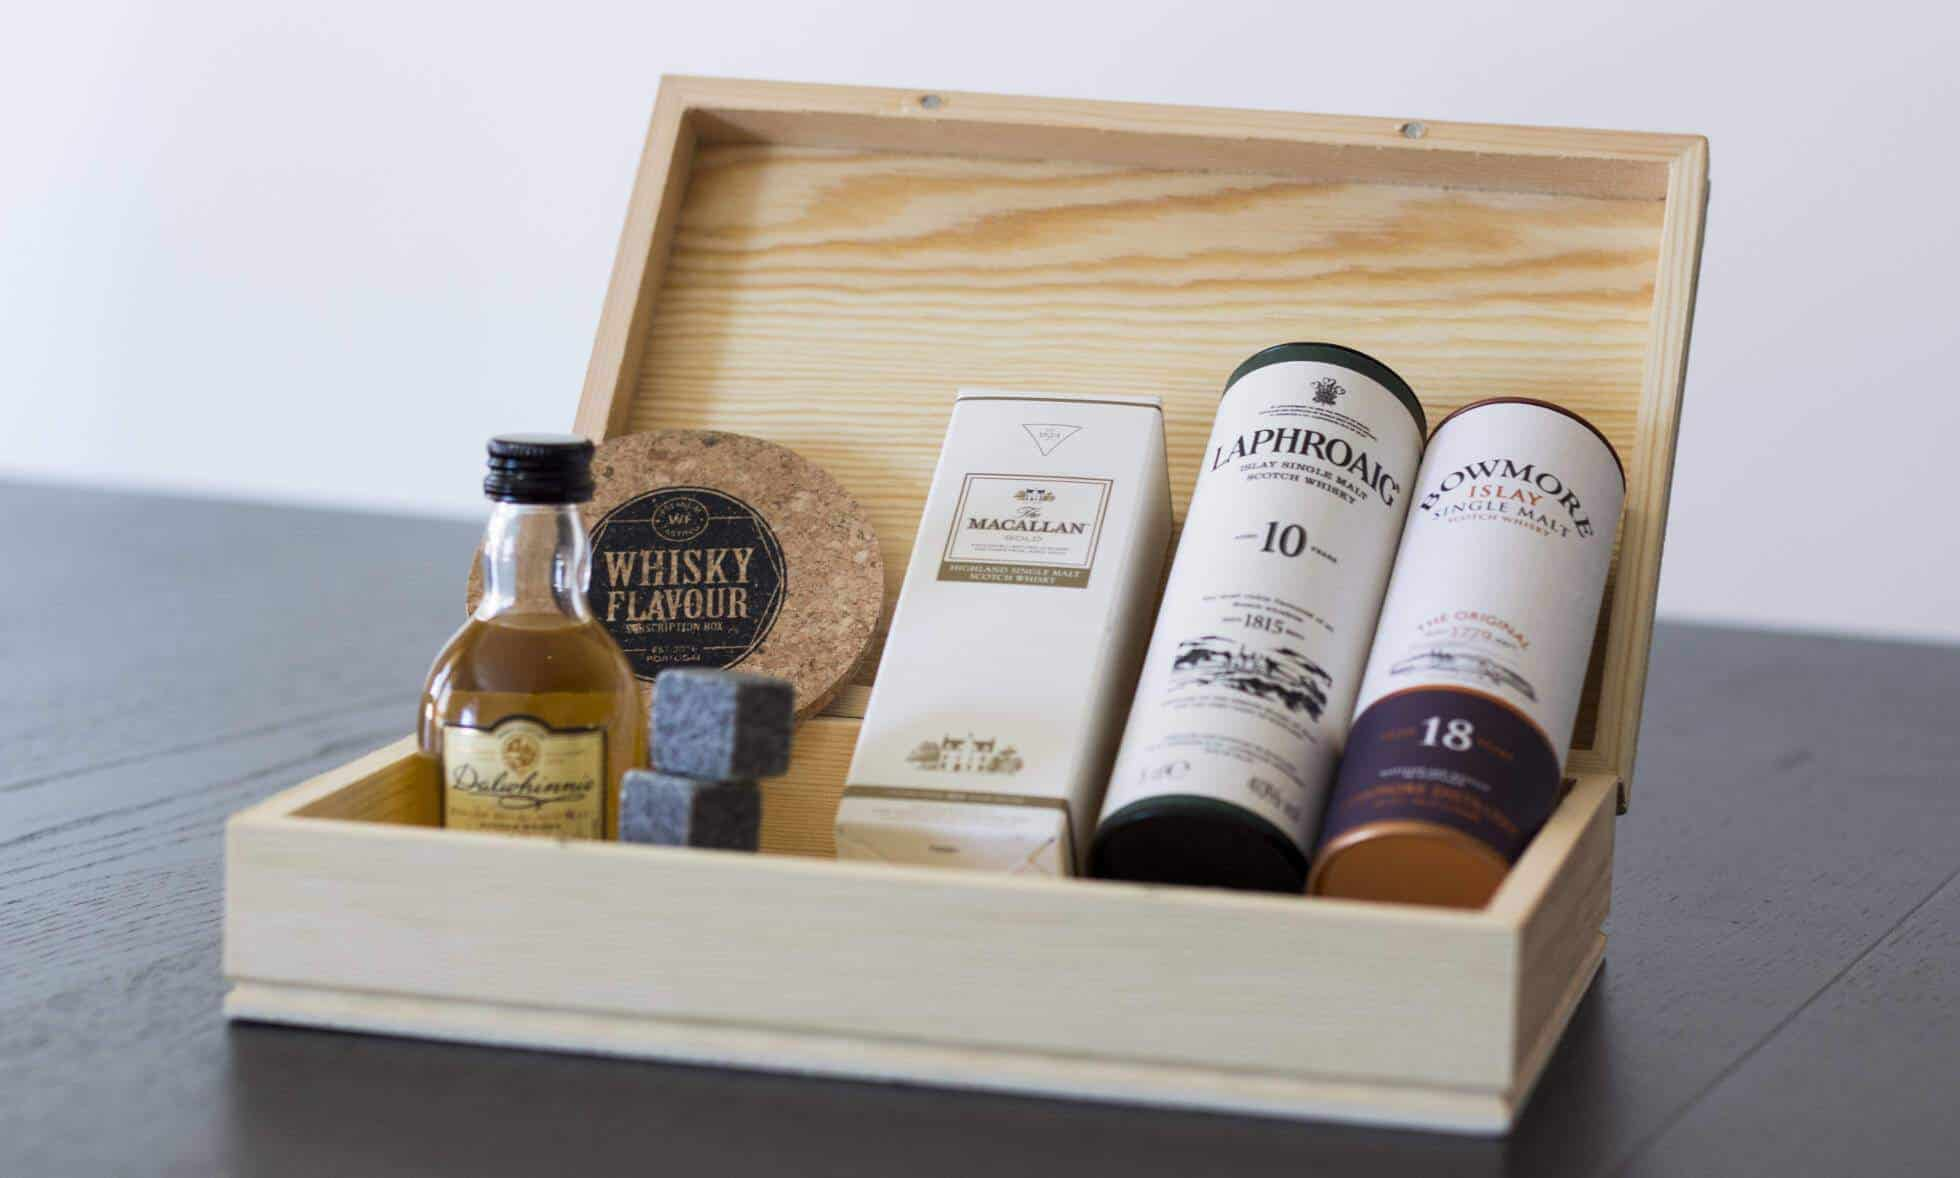 Whisky Flavour 21 Years